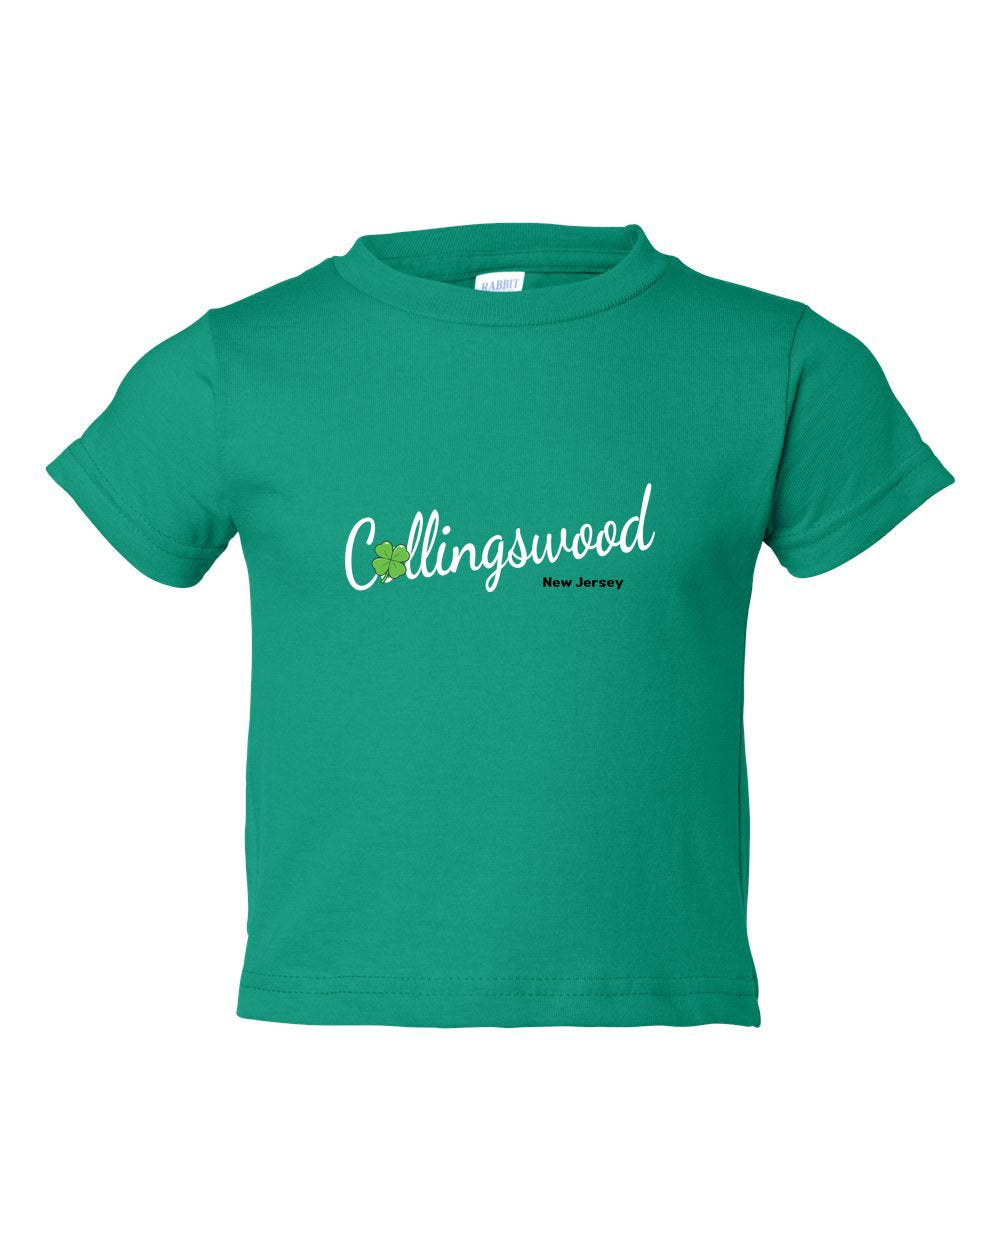 Irish Collingswood TODDLER T-Shirt